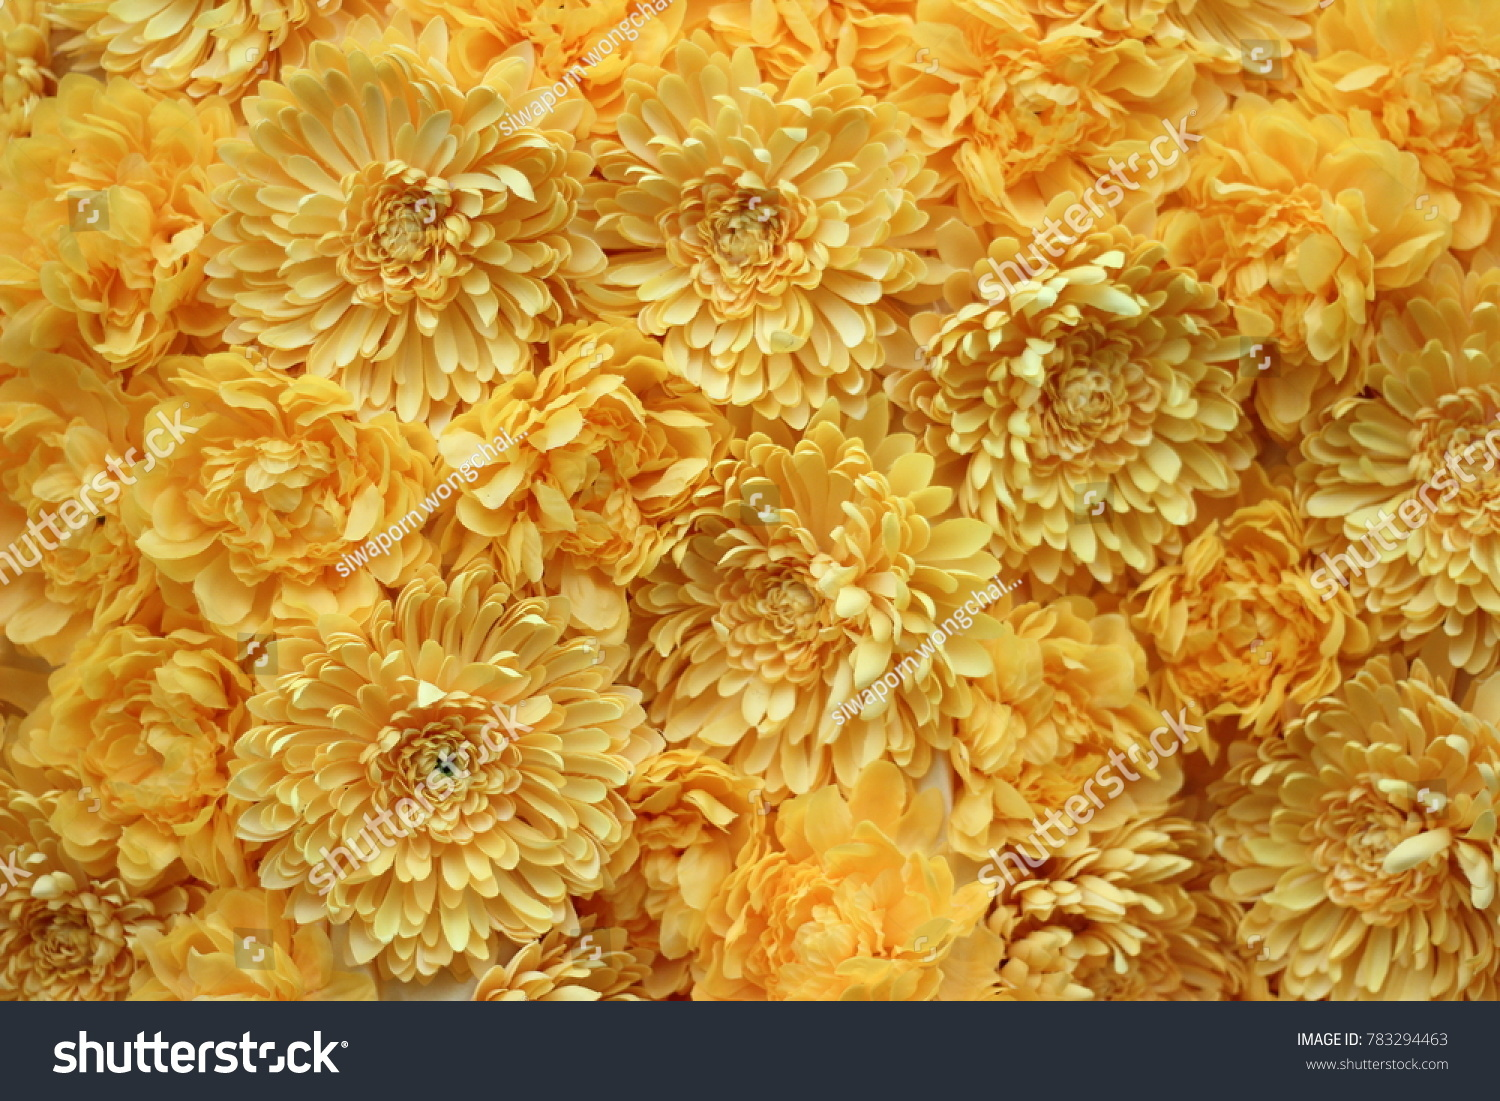 Yellow Flowers Aesthetic Background Stock Photo Edit Now 783294463